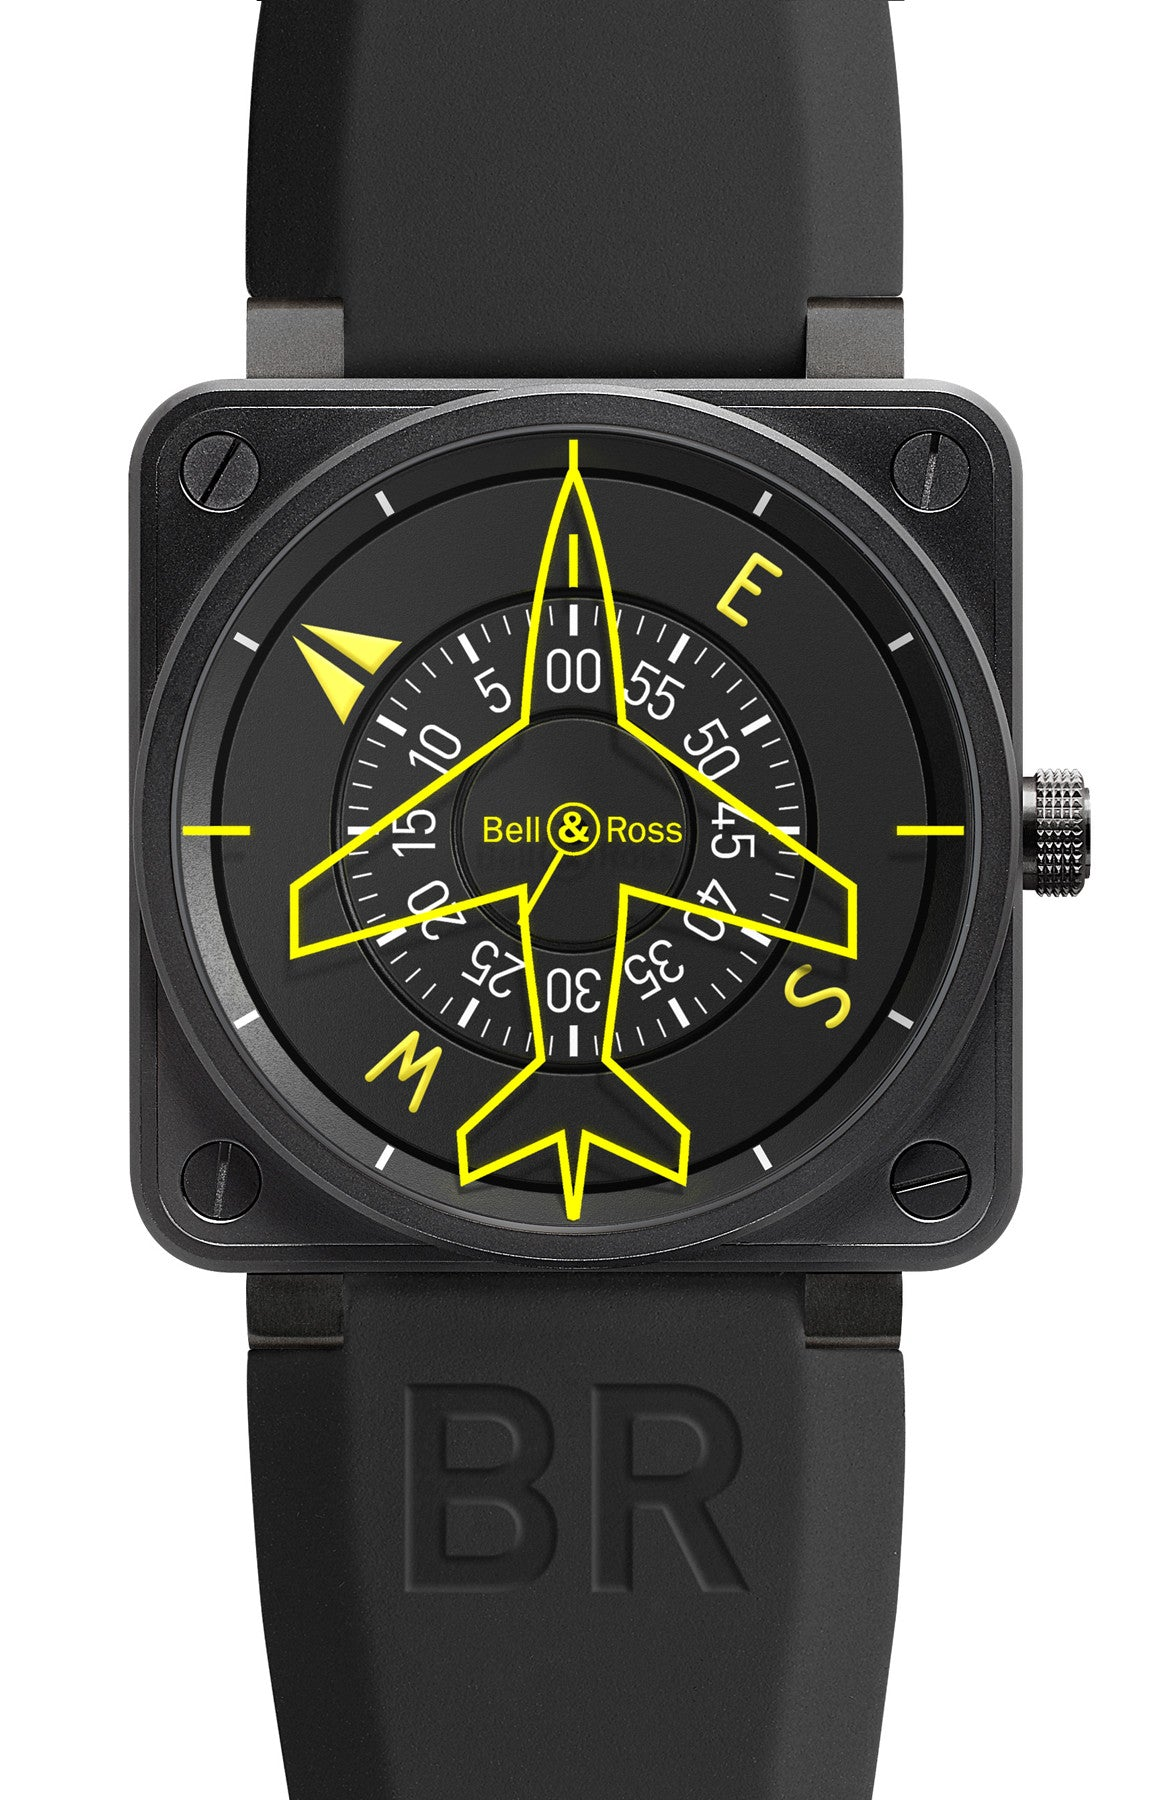 Bell & Ross BR 01 Heading Indicator  Limited Edition